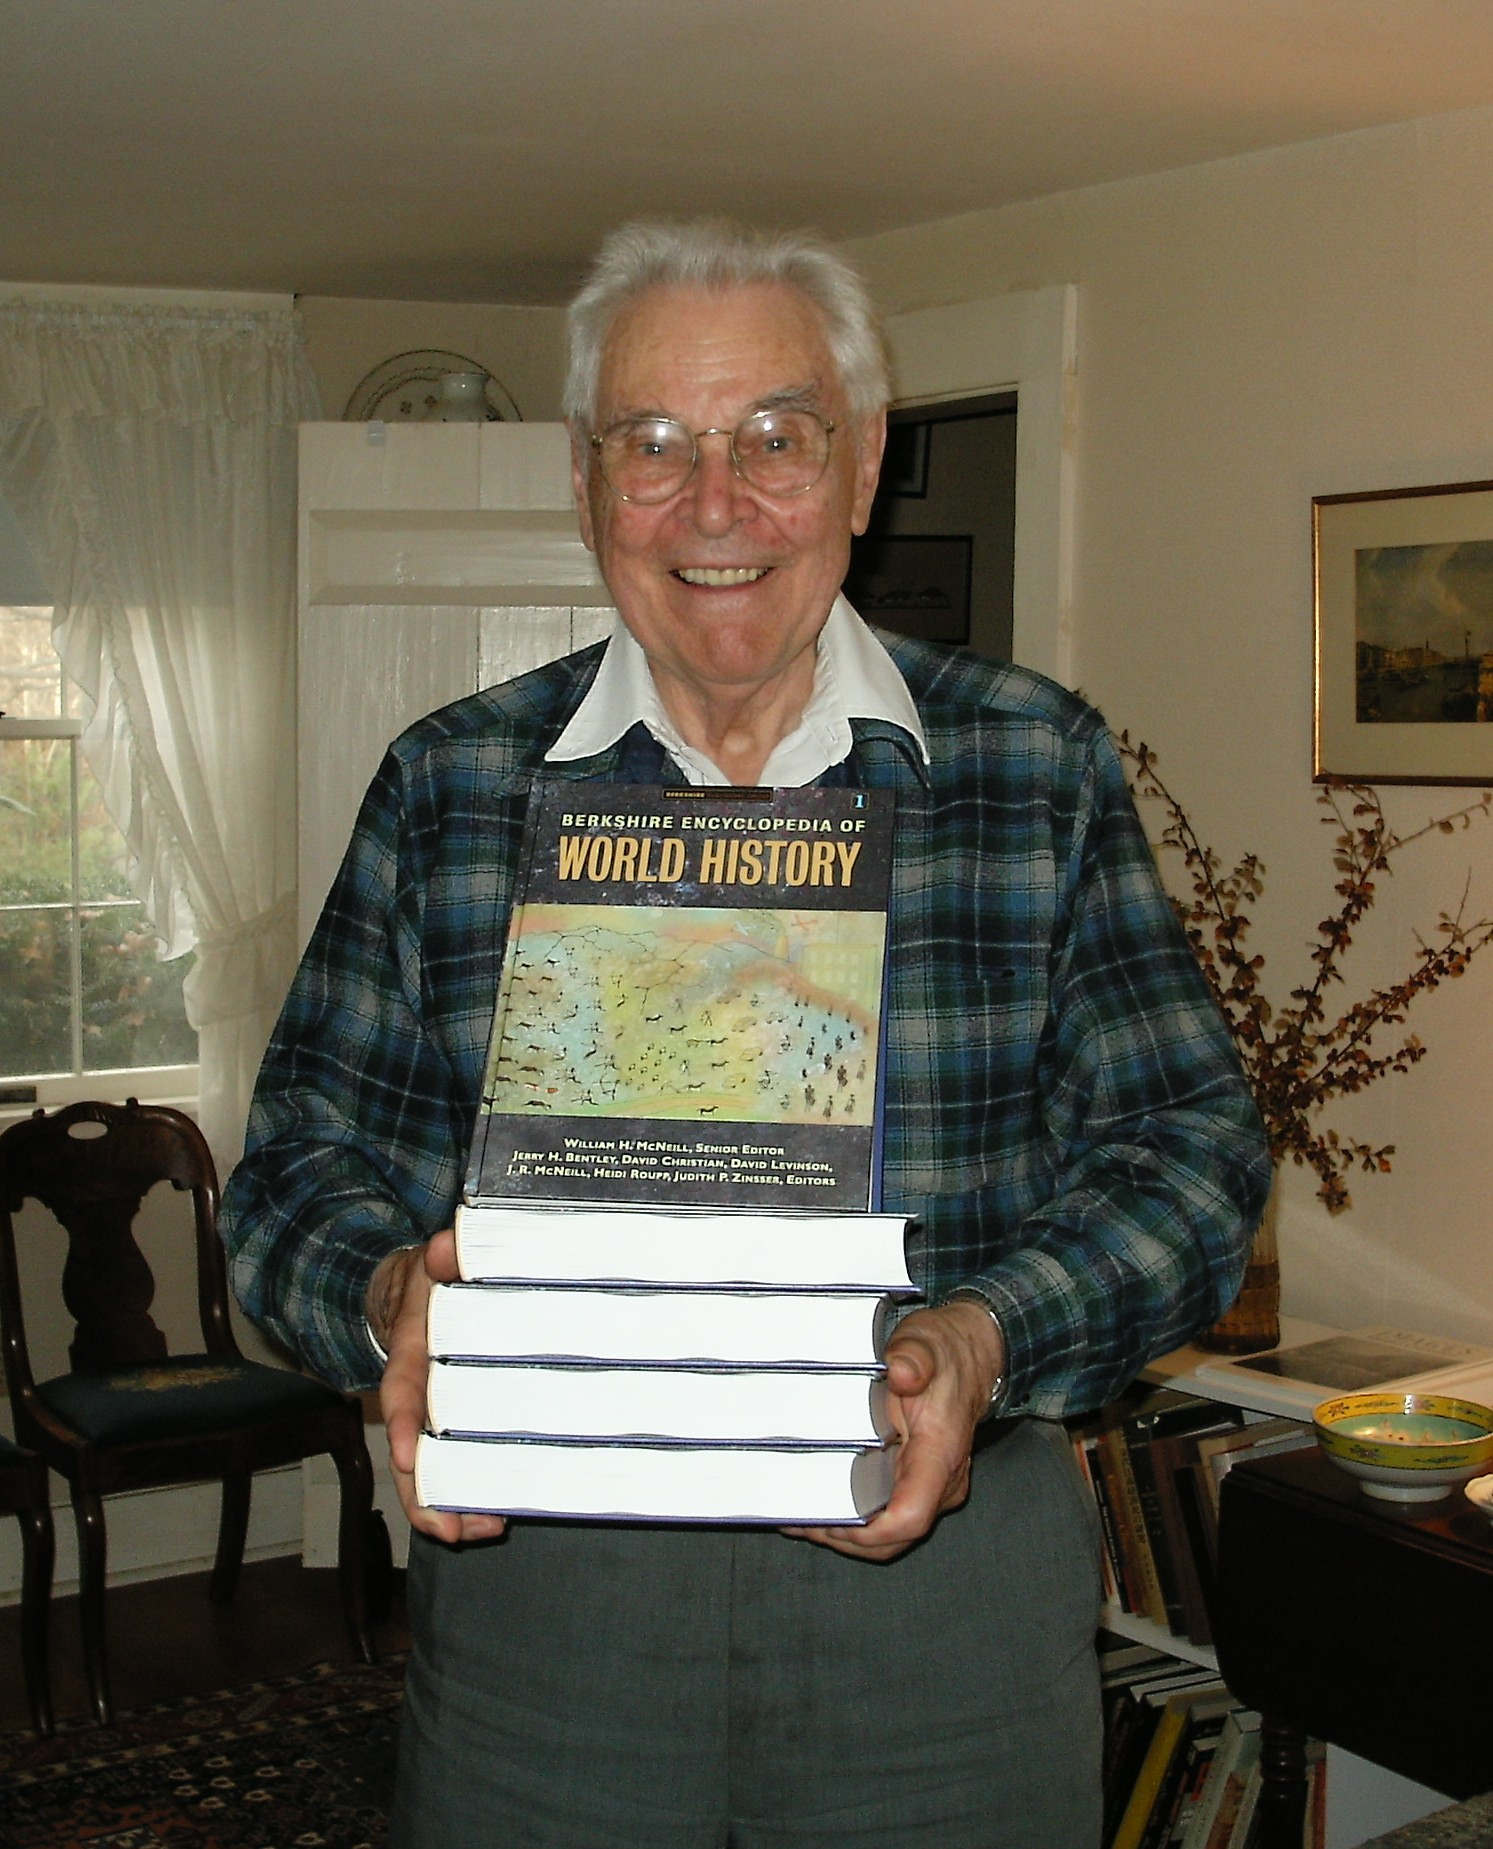 Holding first copies of the ''Berkshire Encyclopedia of World History'' on his 87th birthday